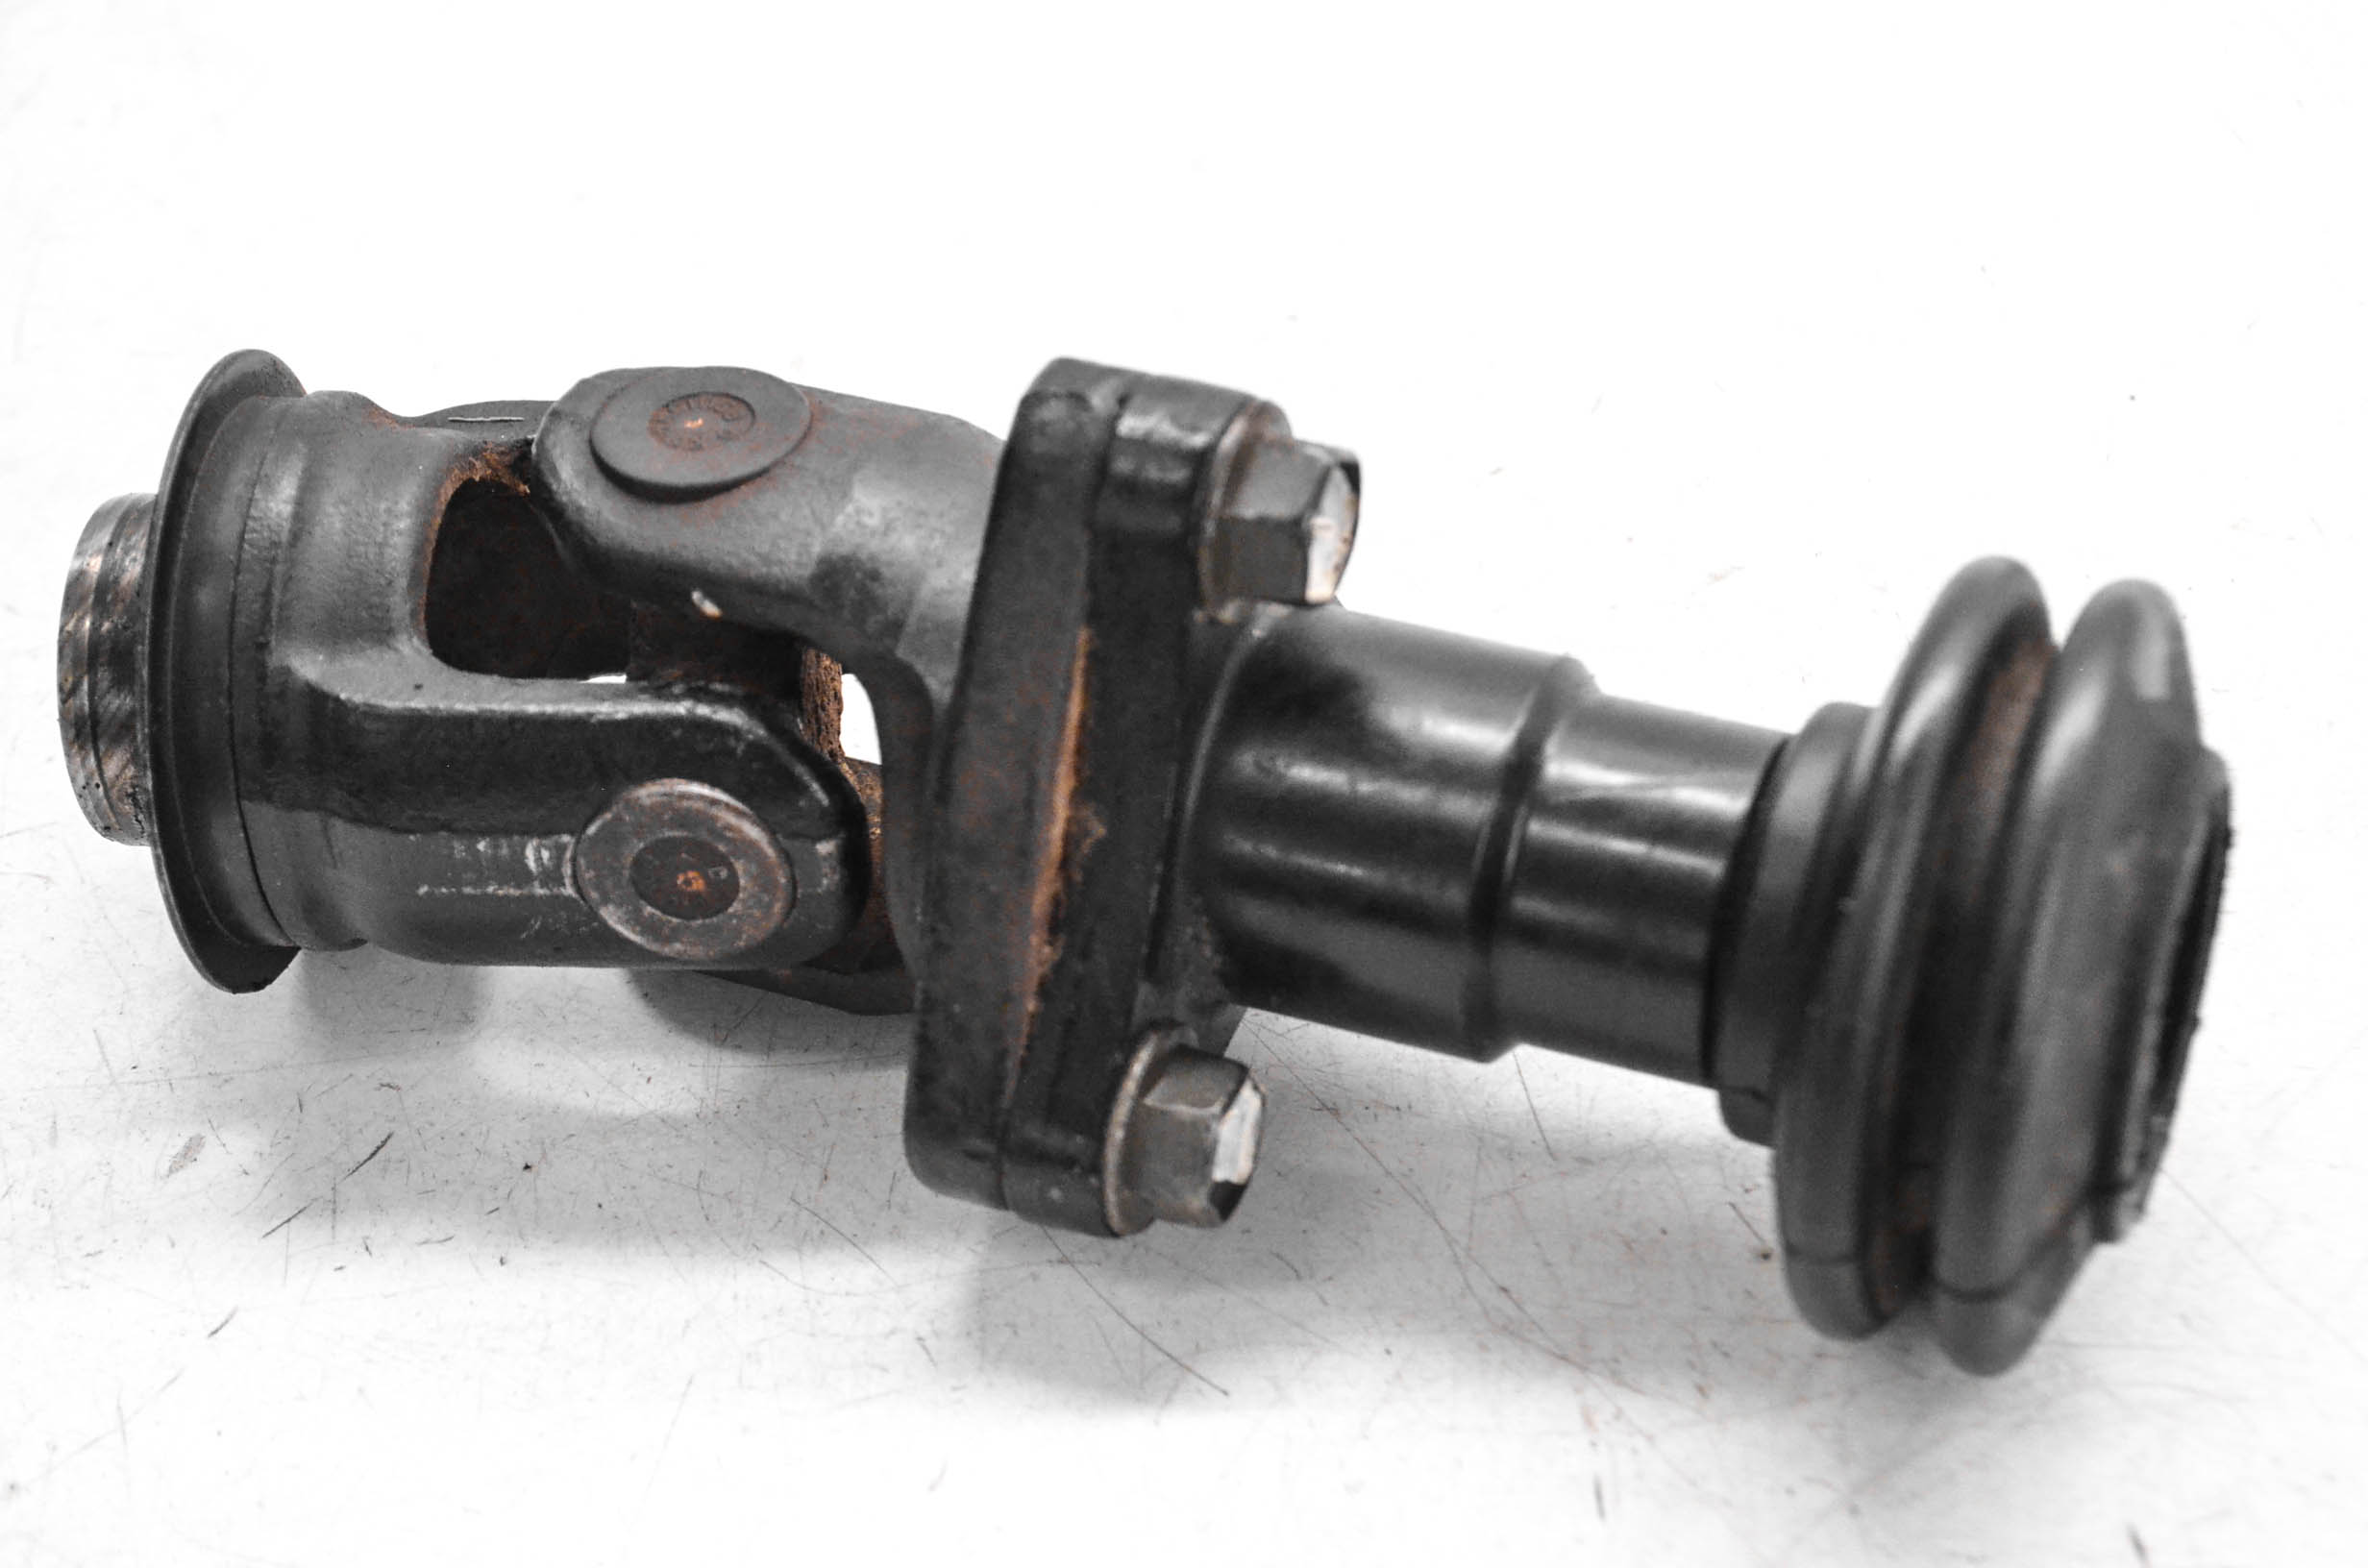 06 Suzuki Eiger 400 4x4 Rear Drive Shaft Yokes Ltf400f